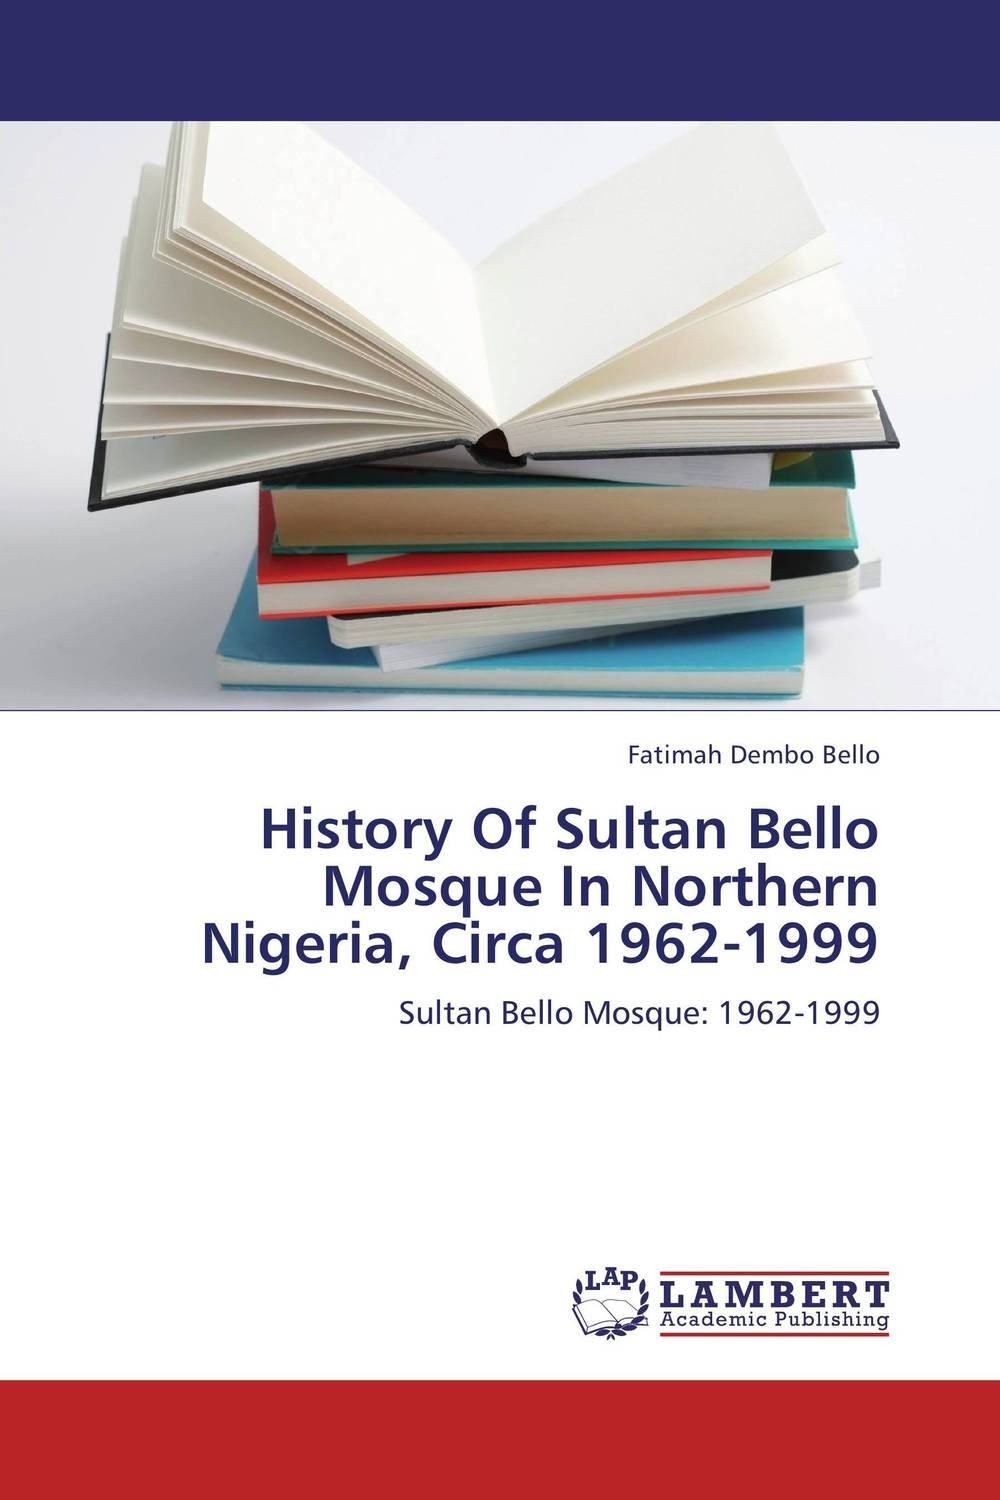 History Of Sultan Bello Mosque In Northern Nigeria, Circa 1962-1999 rahma bourqia in the shadow of the sultan – culture power